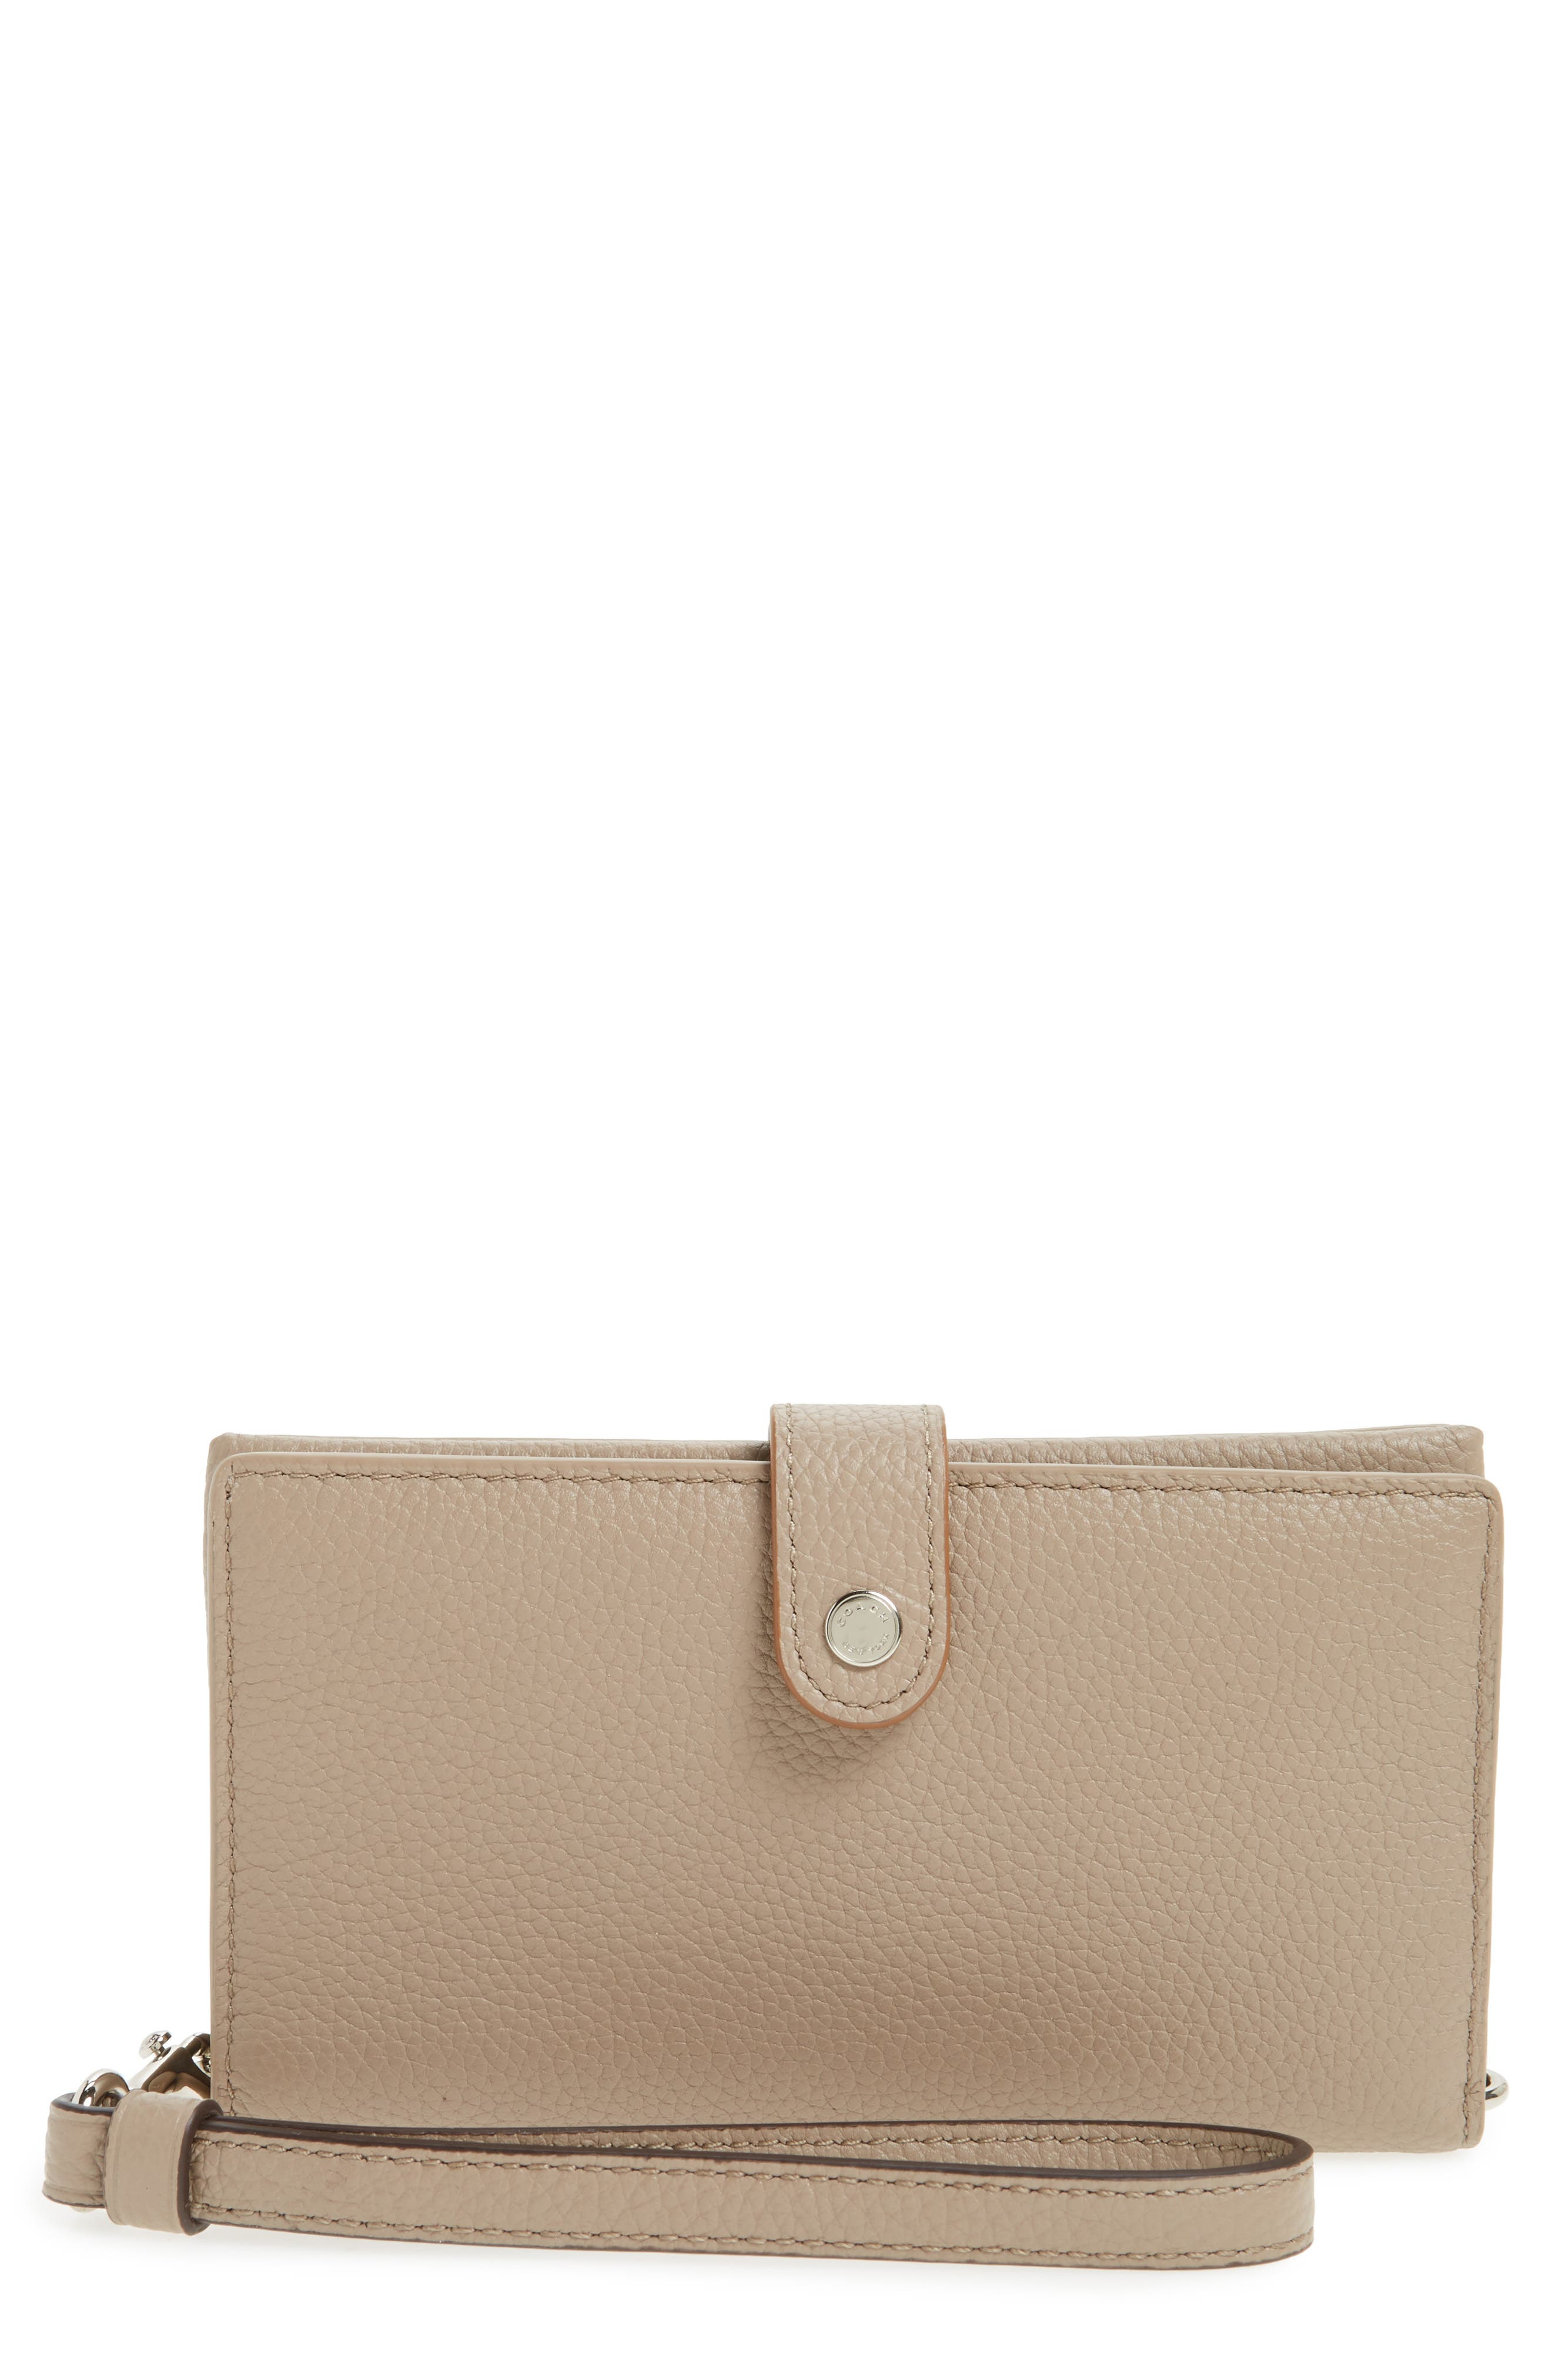 Main Image - COACH Edgestain Calfskin Leather Phone Wristlet